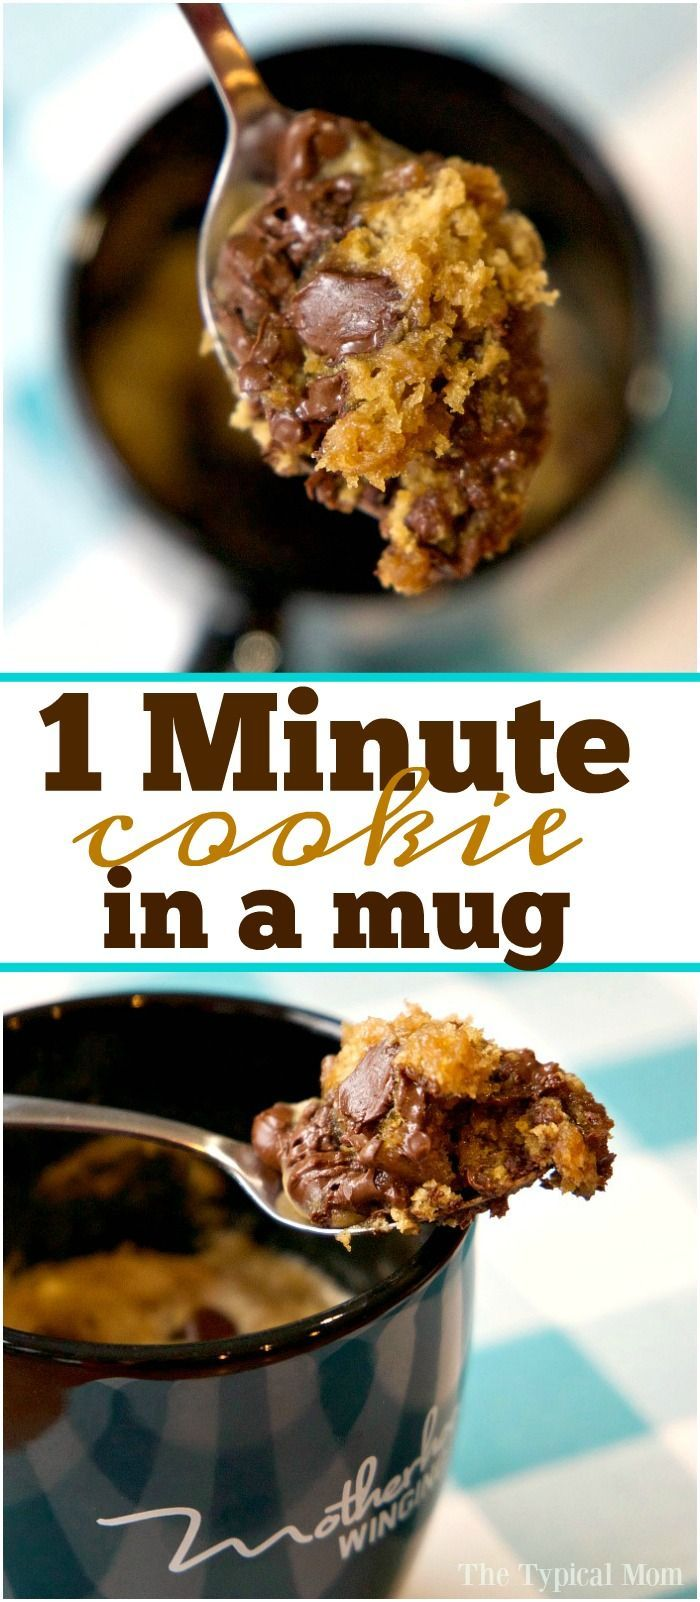 Chocolate chip cookie in a mug that just takes one minute and it's done! Perfect cookie for one when you just want a little something sweet at night. via @The Typical Mom